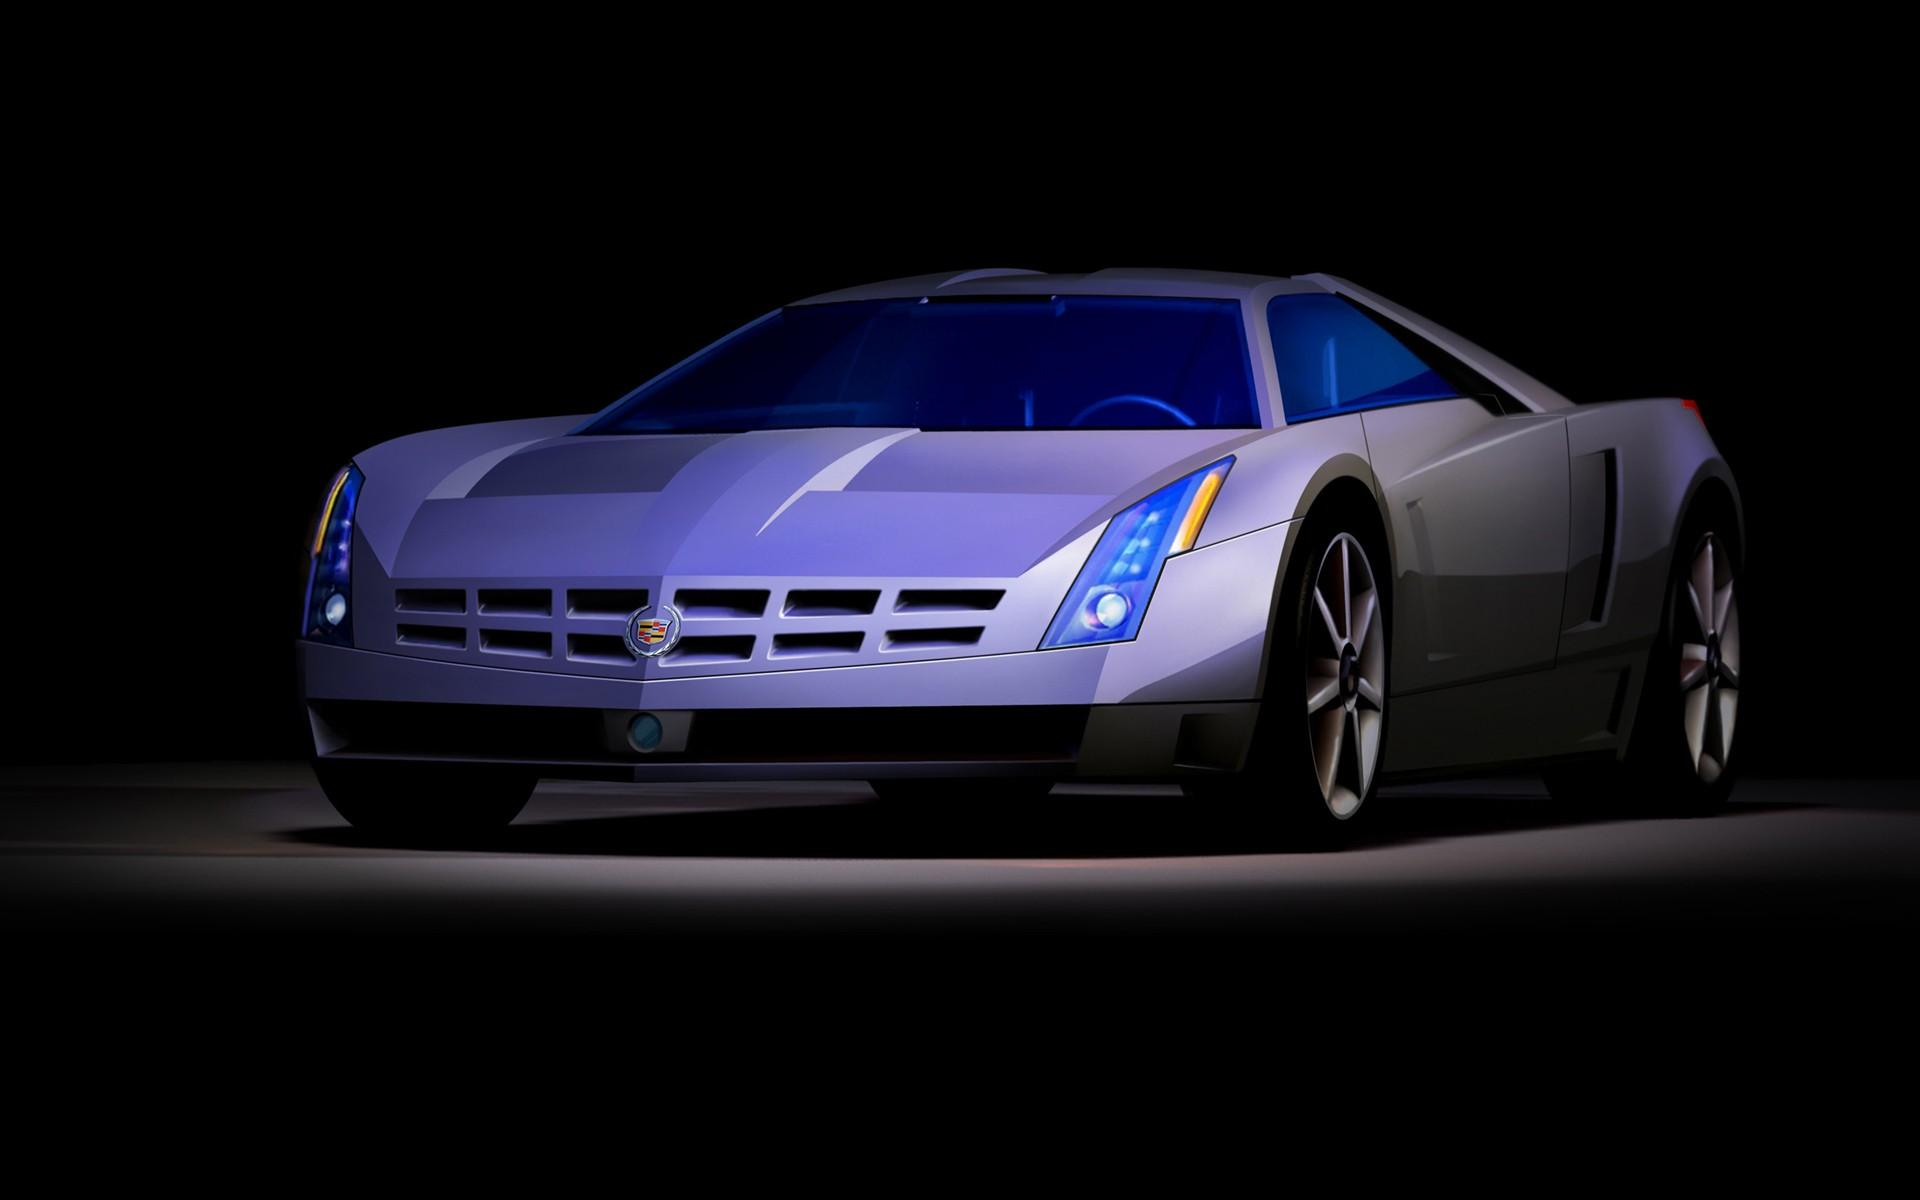 Cadillac Cien Concept Car wallpapers